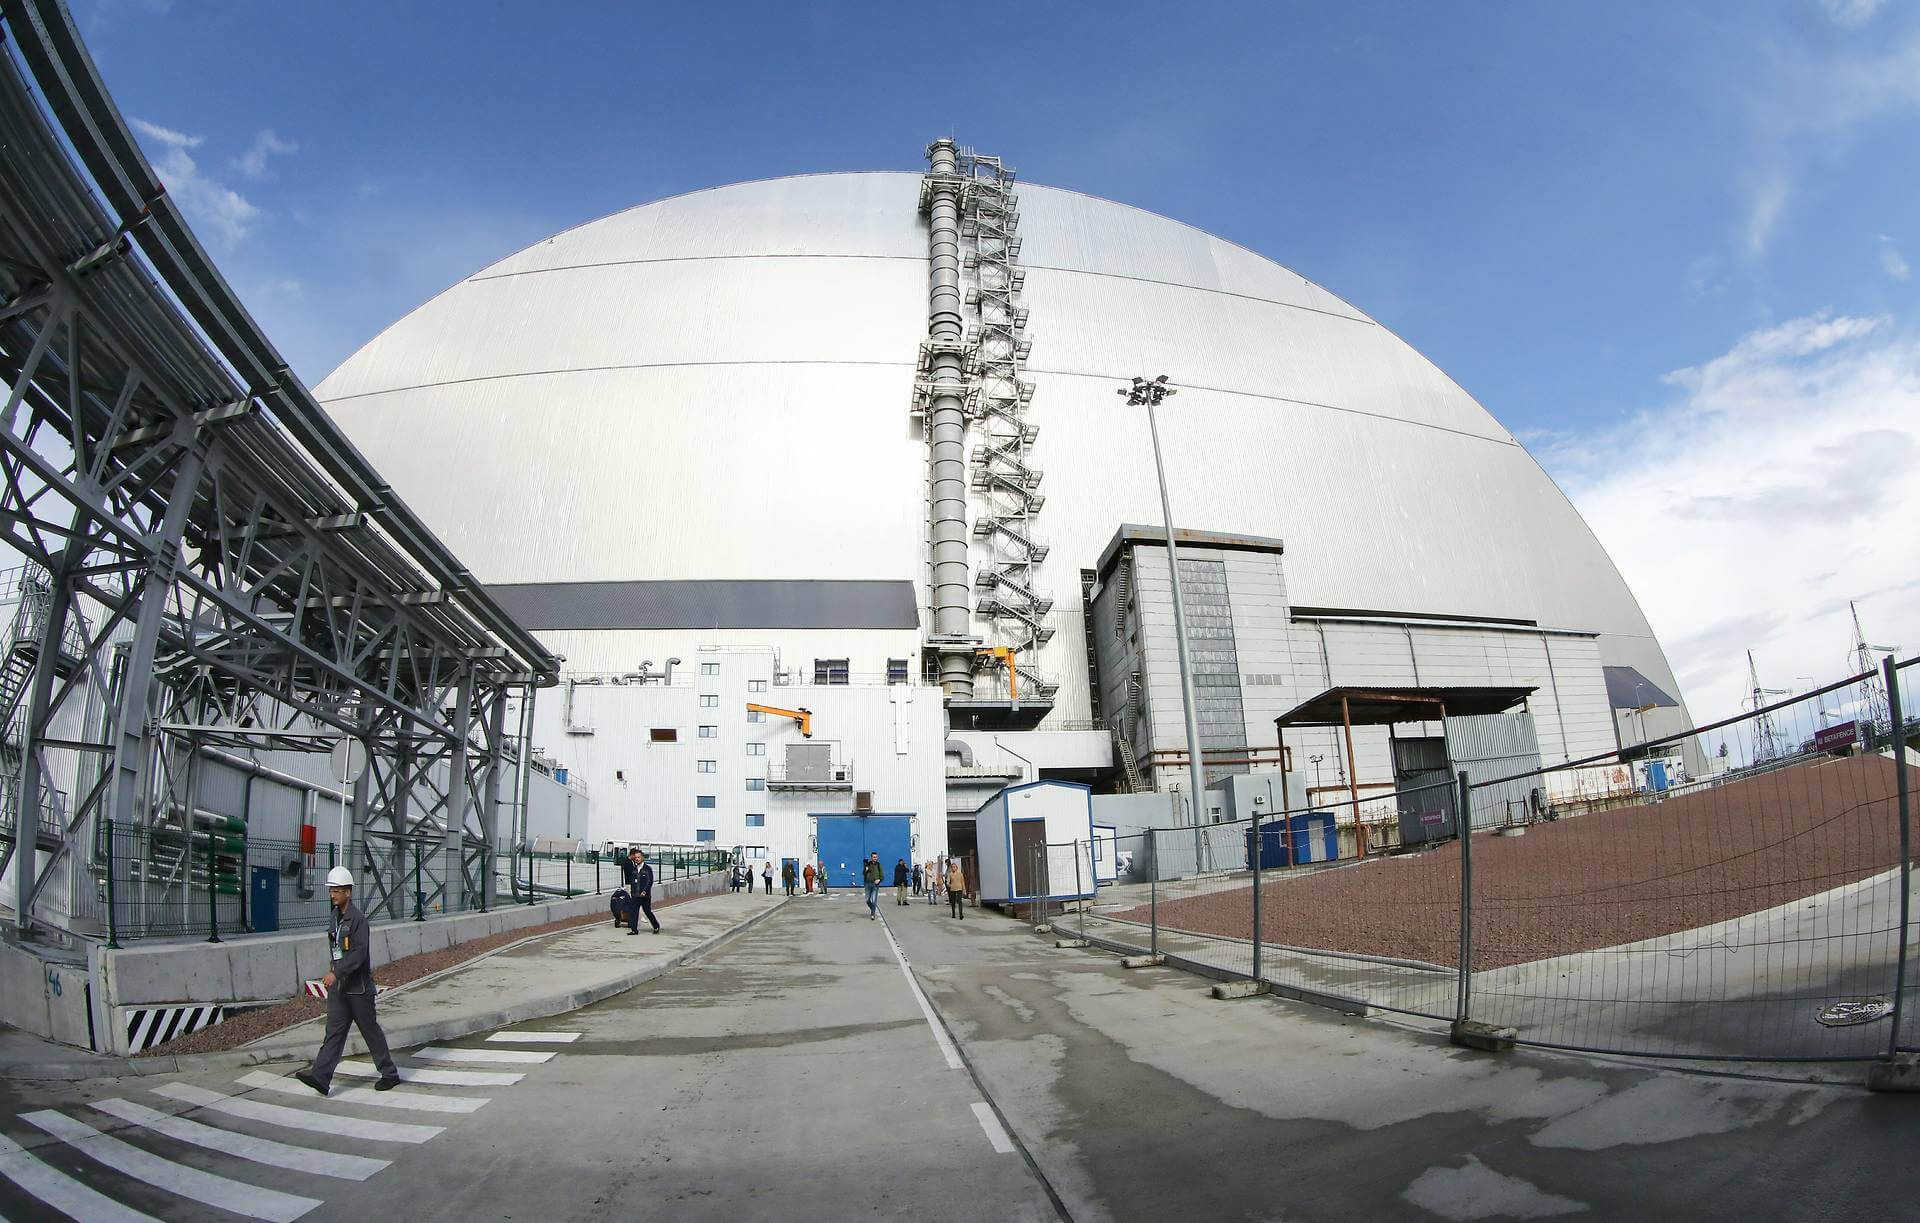 #videos | Inside the new sarcophagus of the Chernobyl nuclear power plant worth 1.5 billion euros